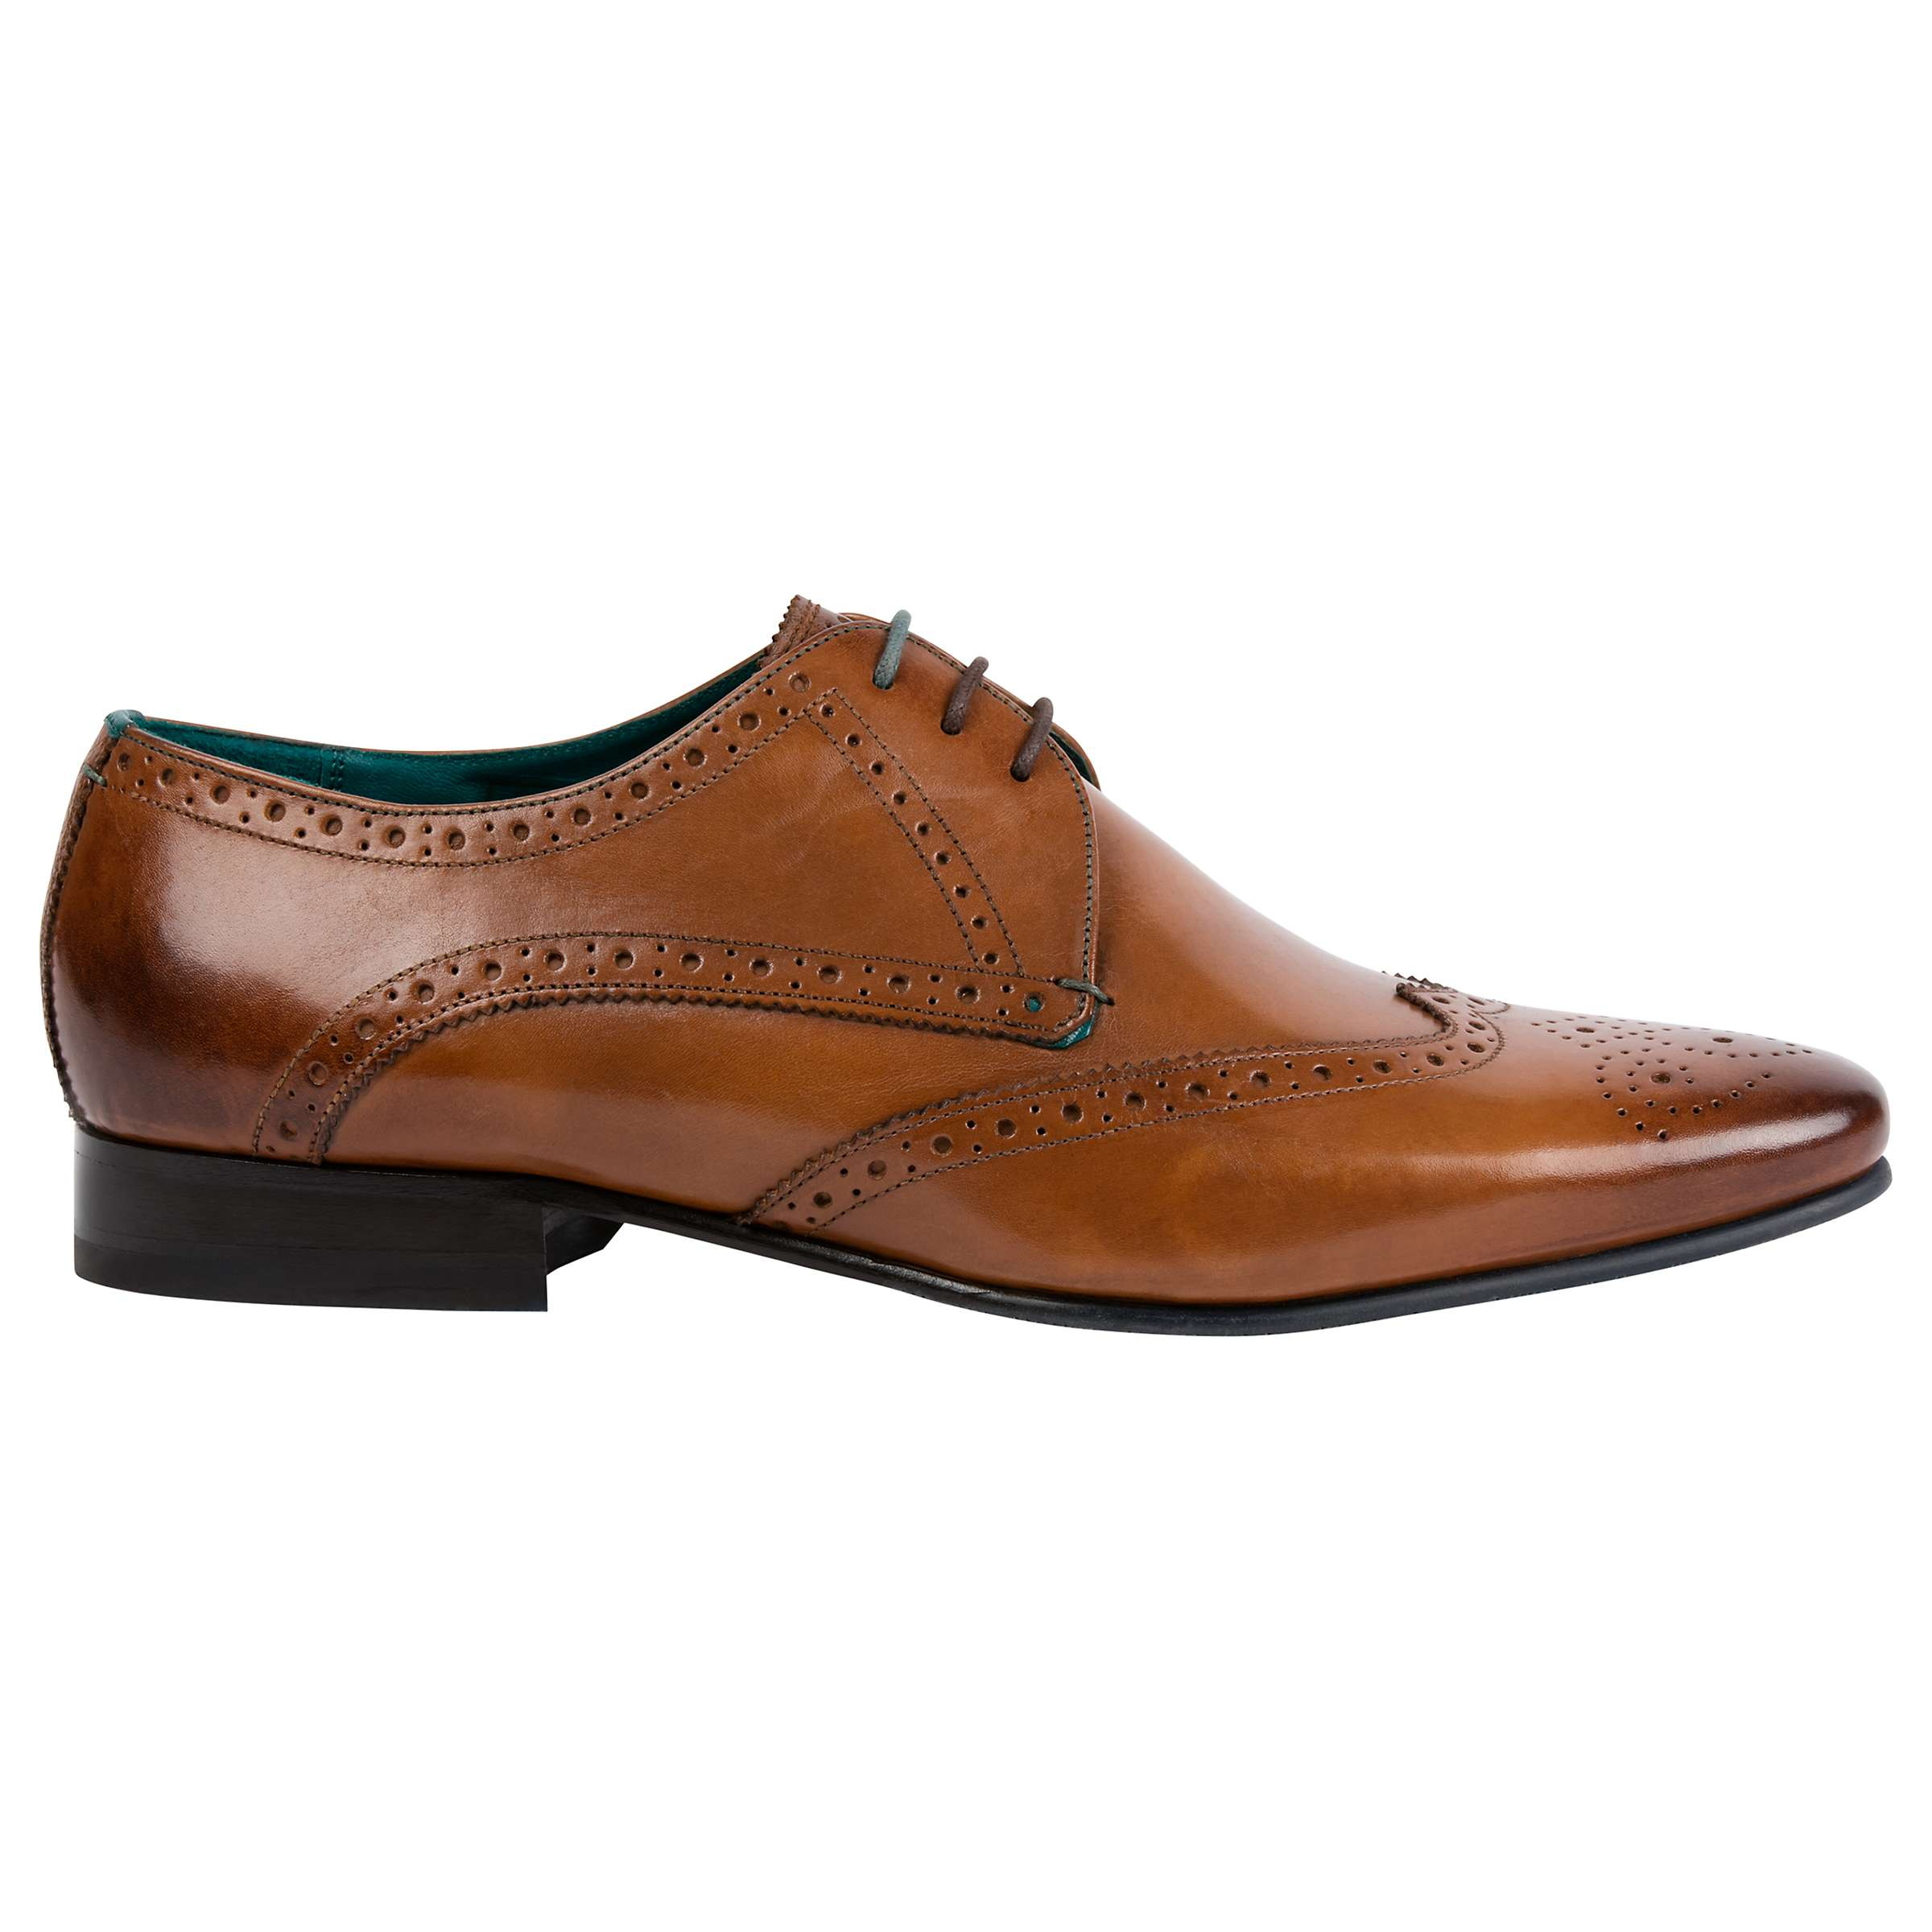 for whole family outlet store sale crazy price Ted Baker Hosei Pointed Brogues, Tan at John Lewis & Partners